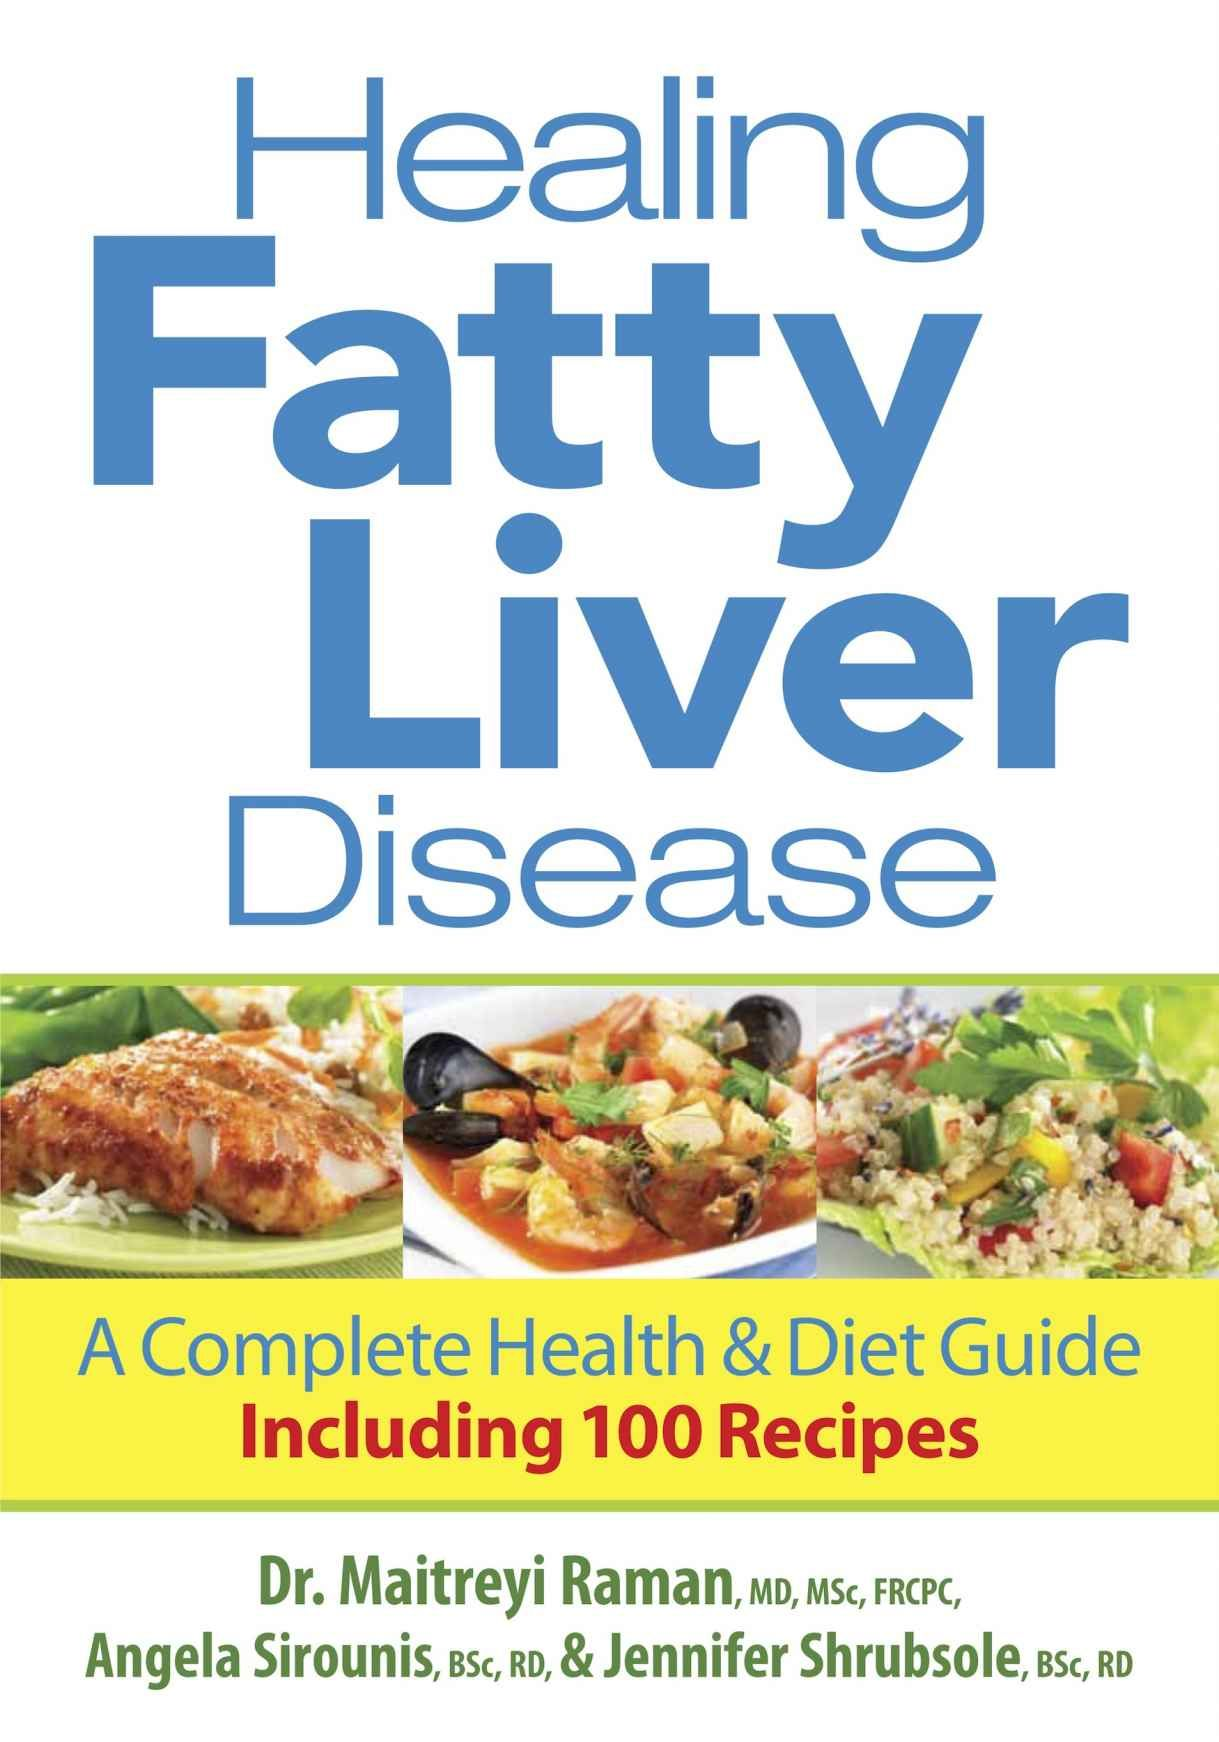 Healing fatty liver disease a complete health and diet guide healing fatty liver disease a complete health and diet guide including 100 recipes forumfinder Image collections